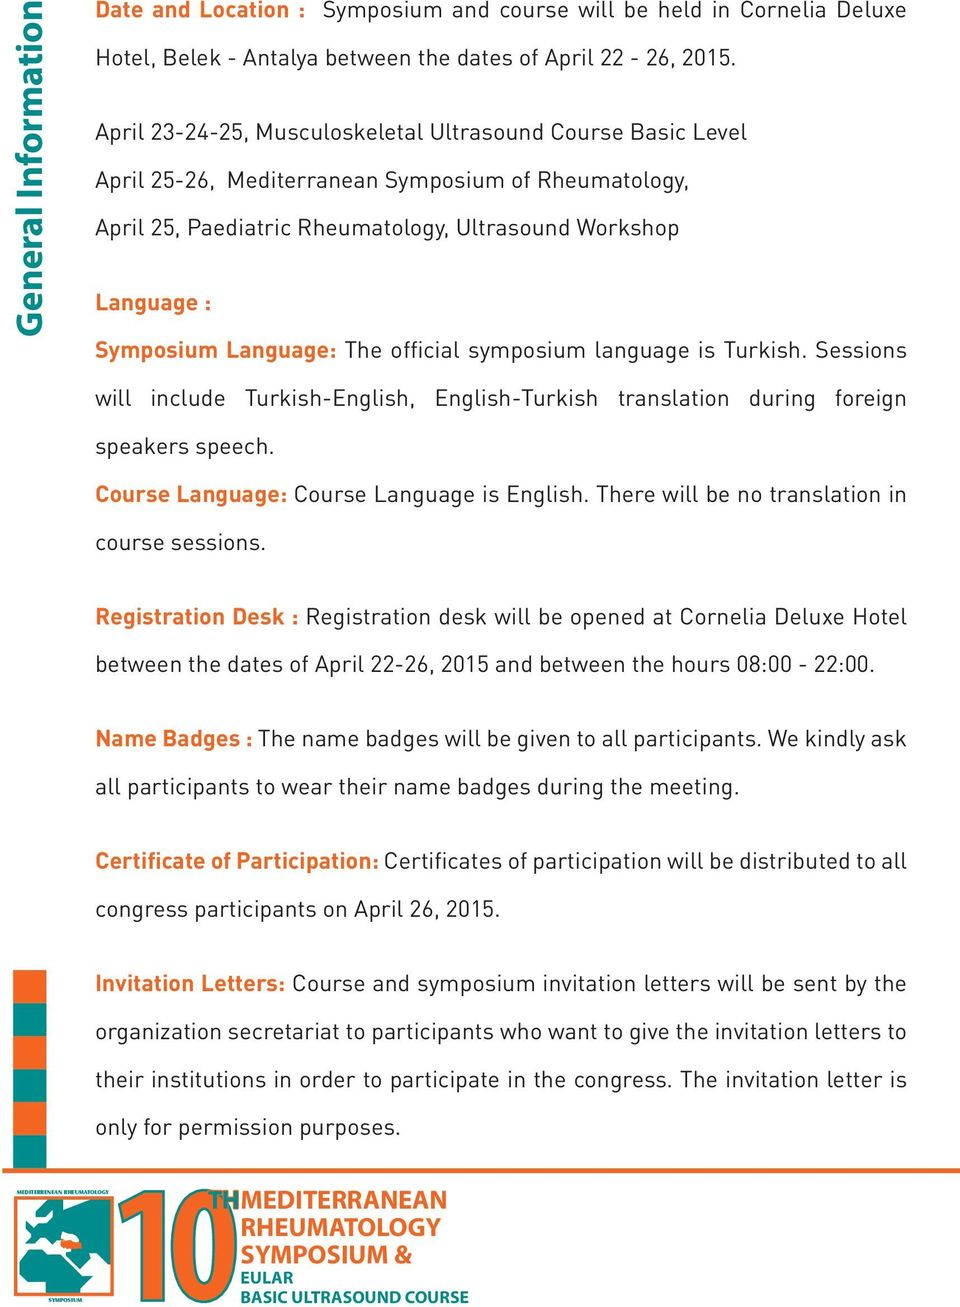 Language: The official symposium language is Turkish. Sessions will include Turkish-English, English-Turkish translation during foreign speakers speech. Course Language: Course Language is English.